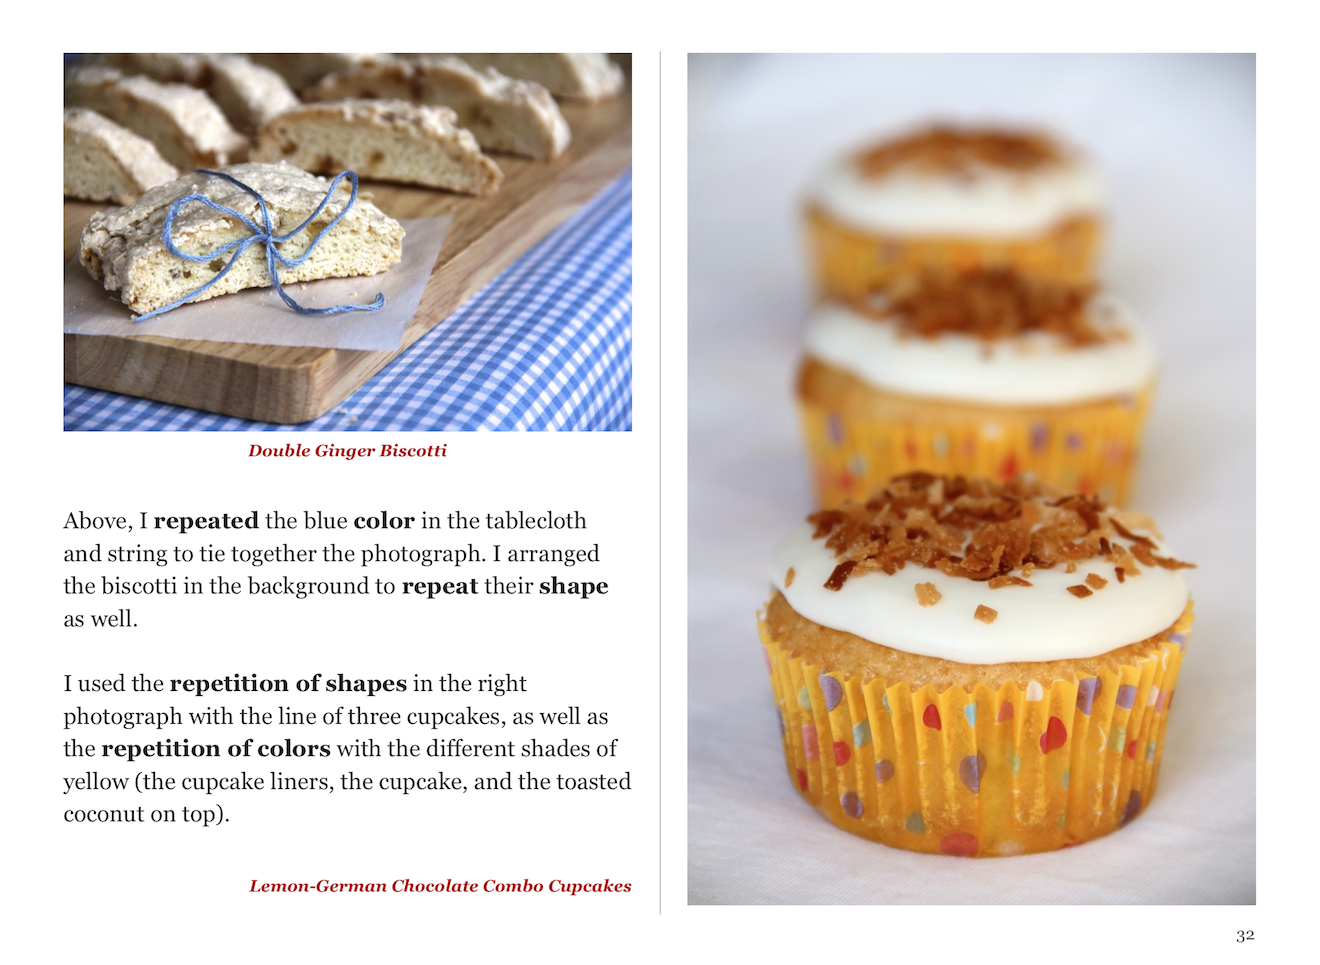 The Basics of Food Photography: Compositional Elements - Repetition Page